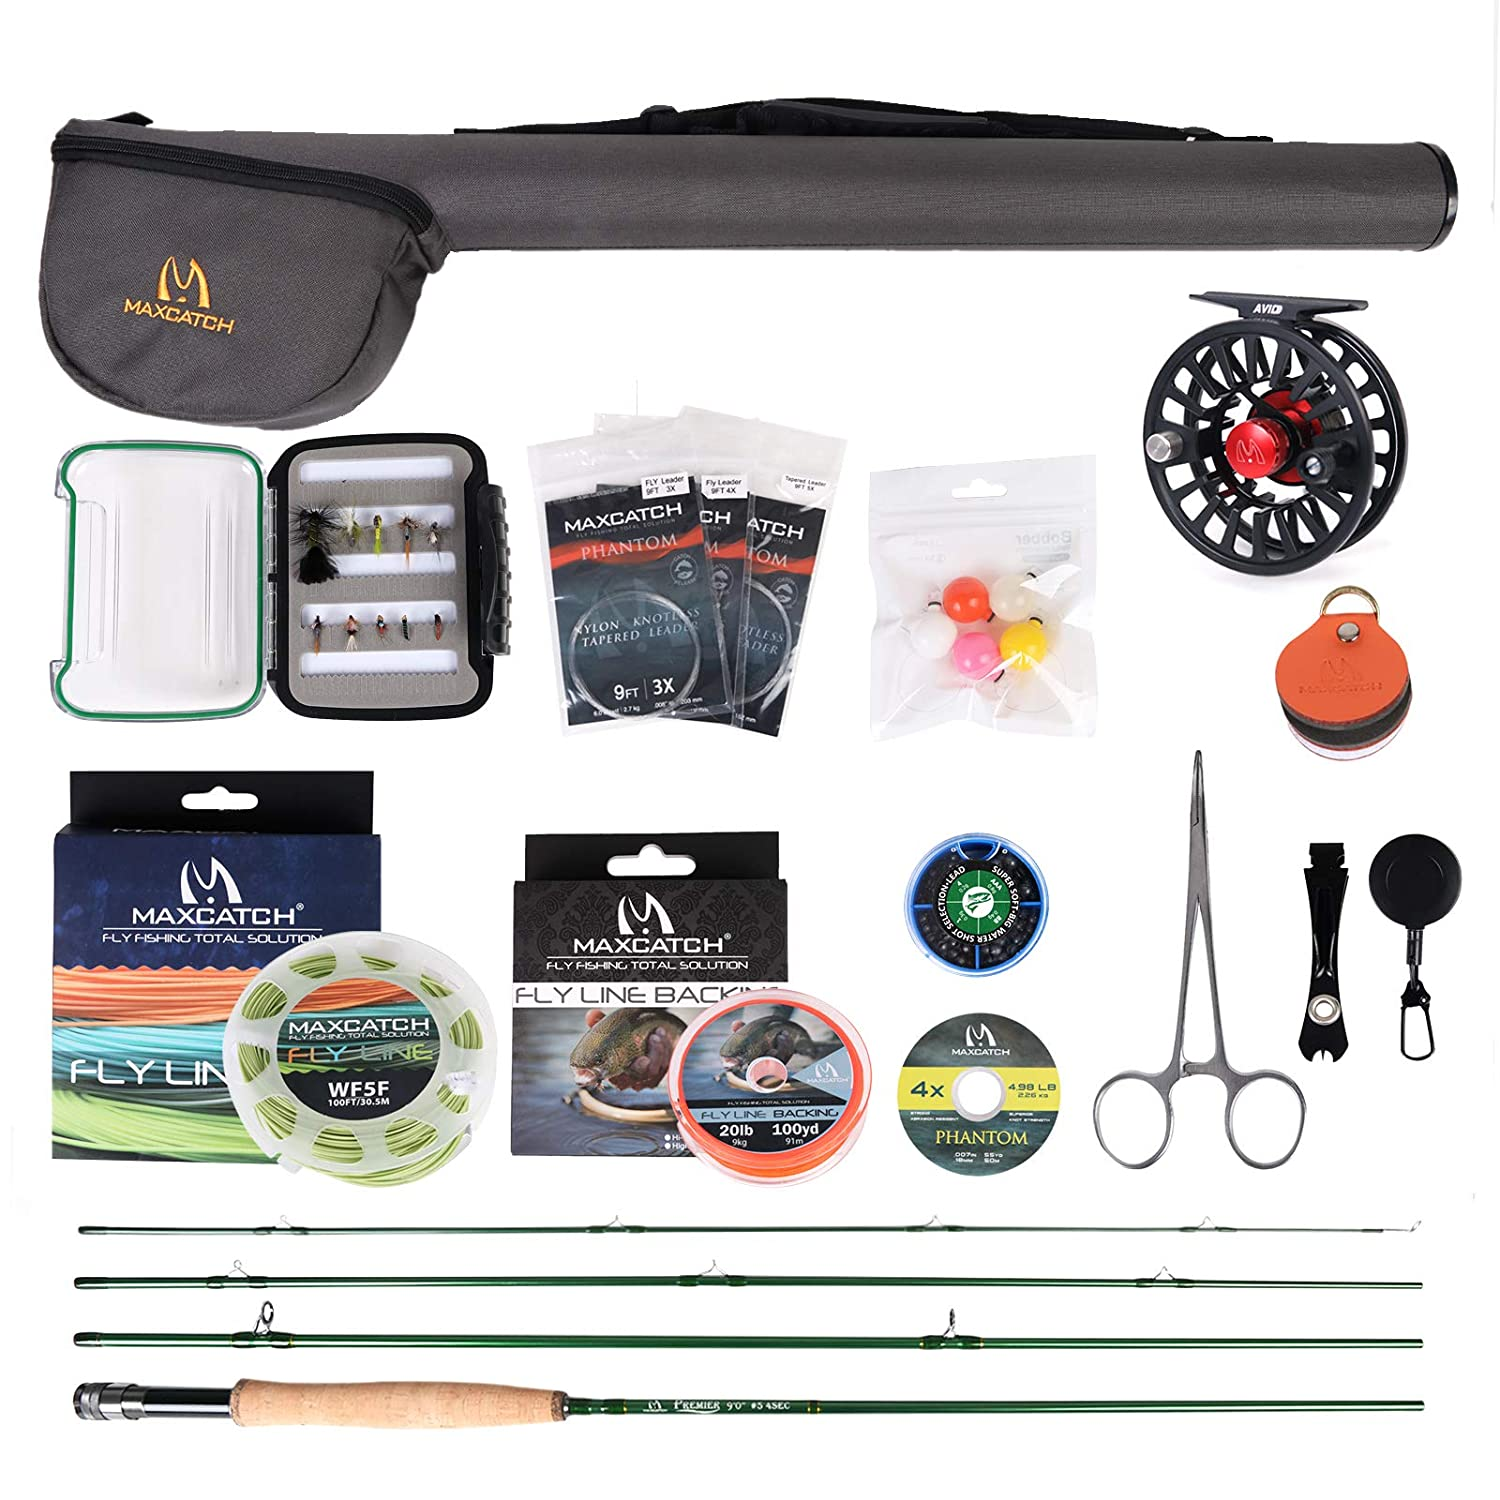 Maxcatch Premier Fly Fishing Rod and Reel Combo Complete 9 Fishing Outfit